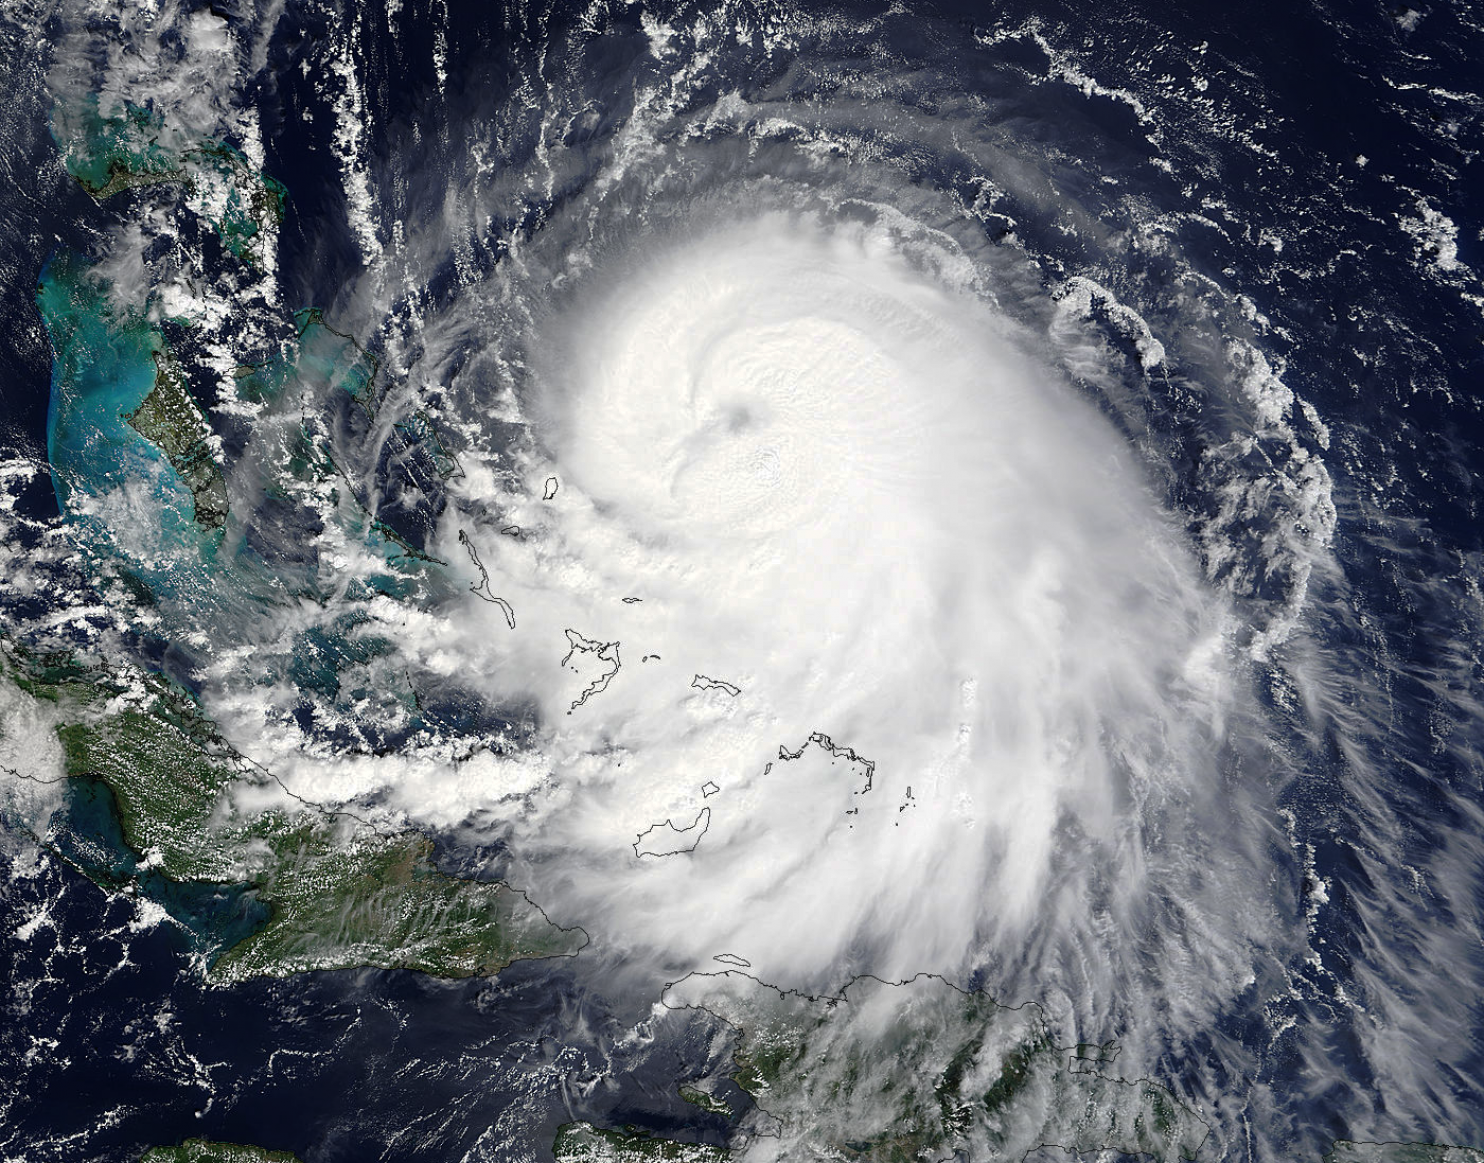 Words Of Wisdom On Hurricane Joaquin A Storm To Respect With Images Joaquin Storm Hurricane